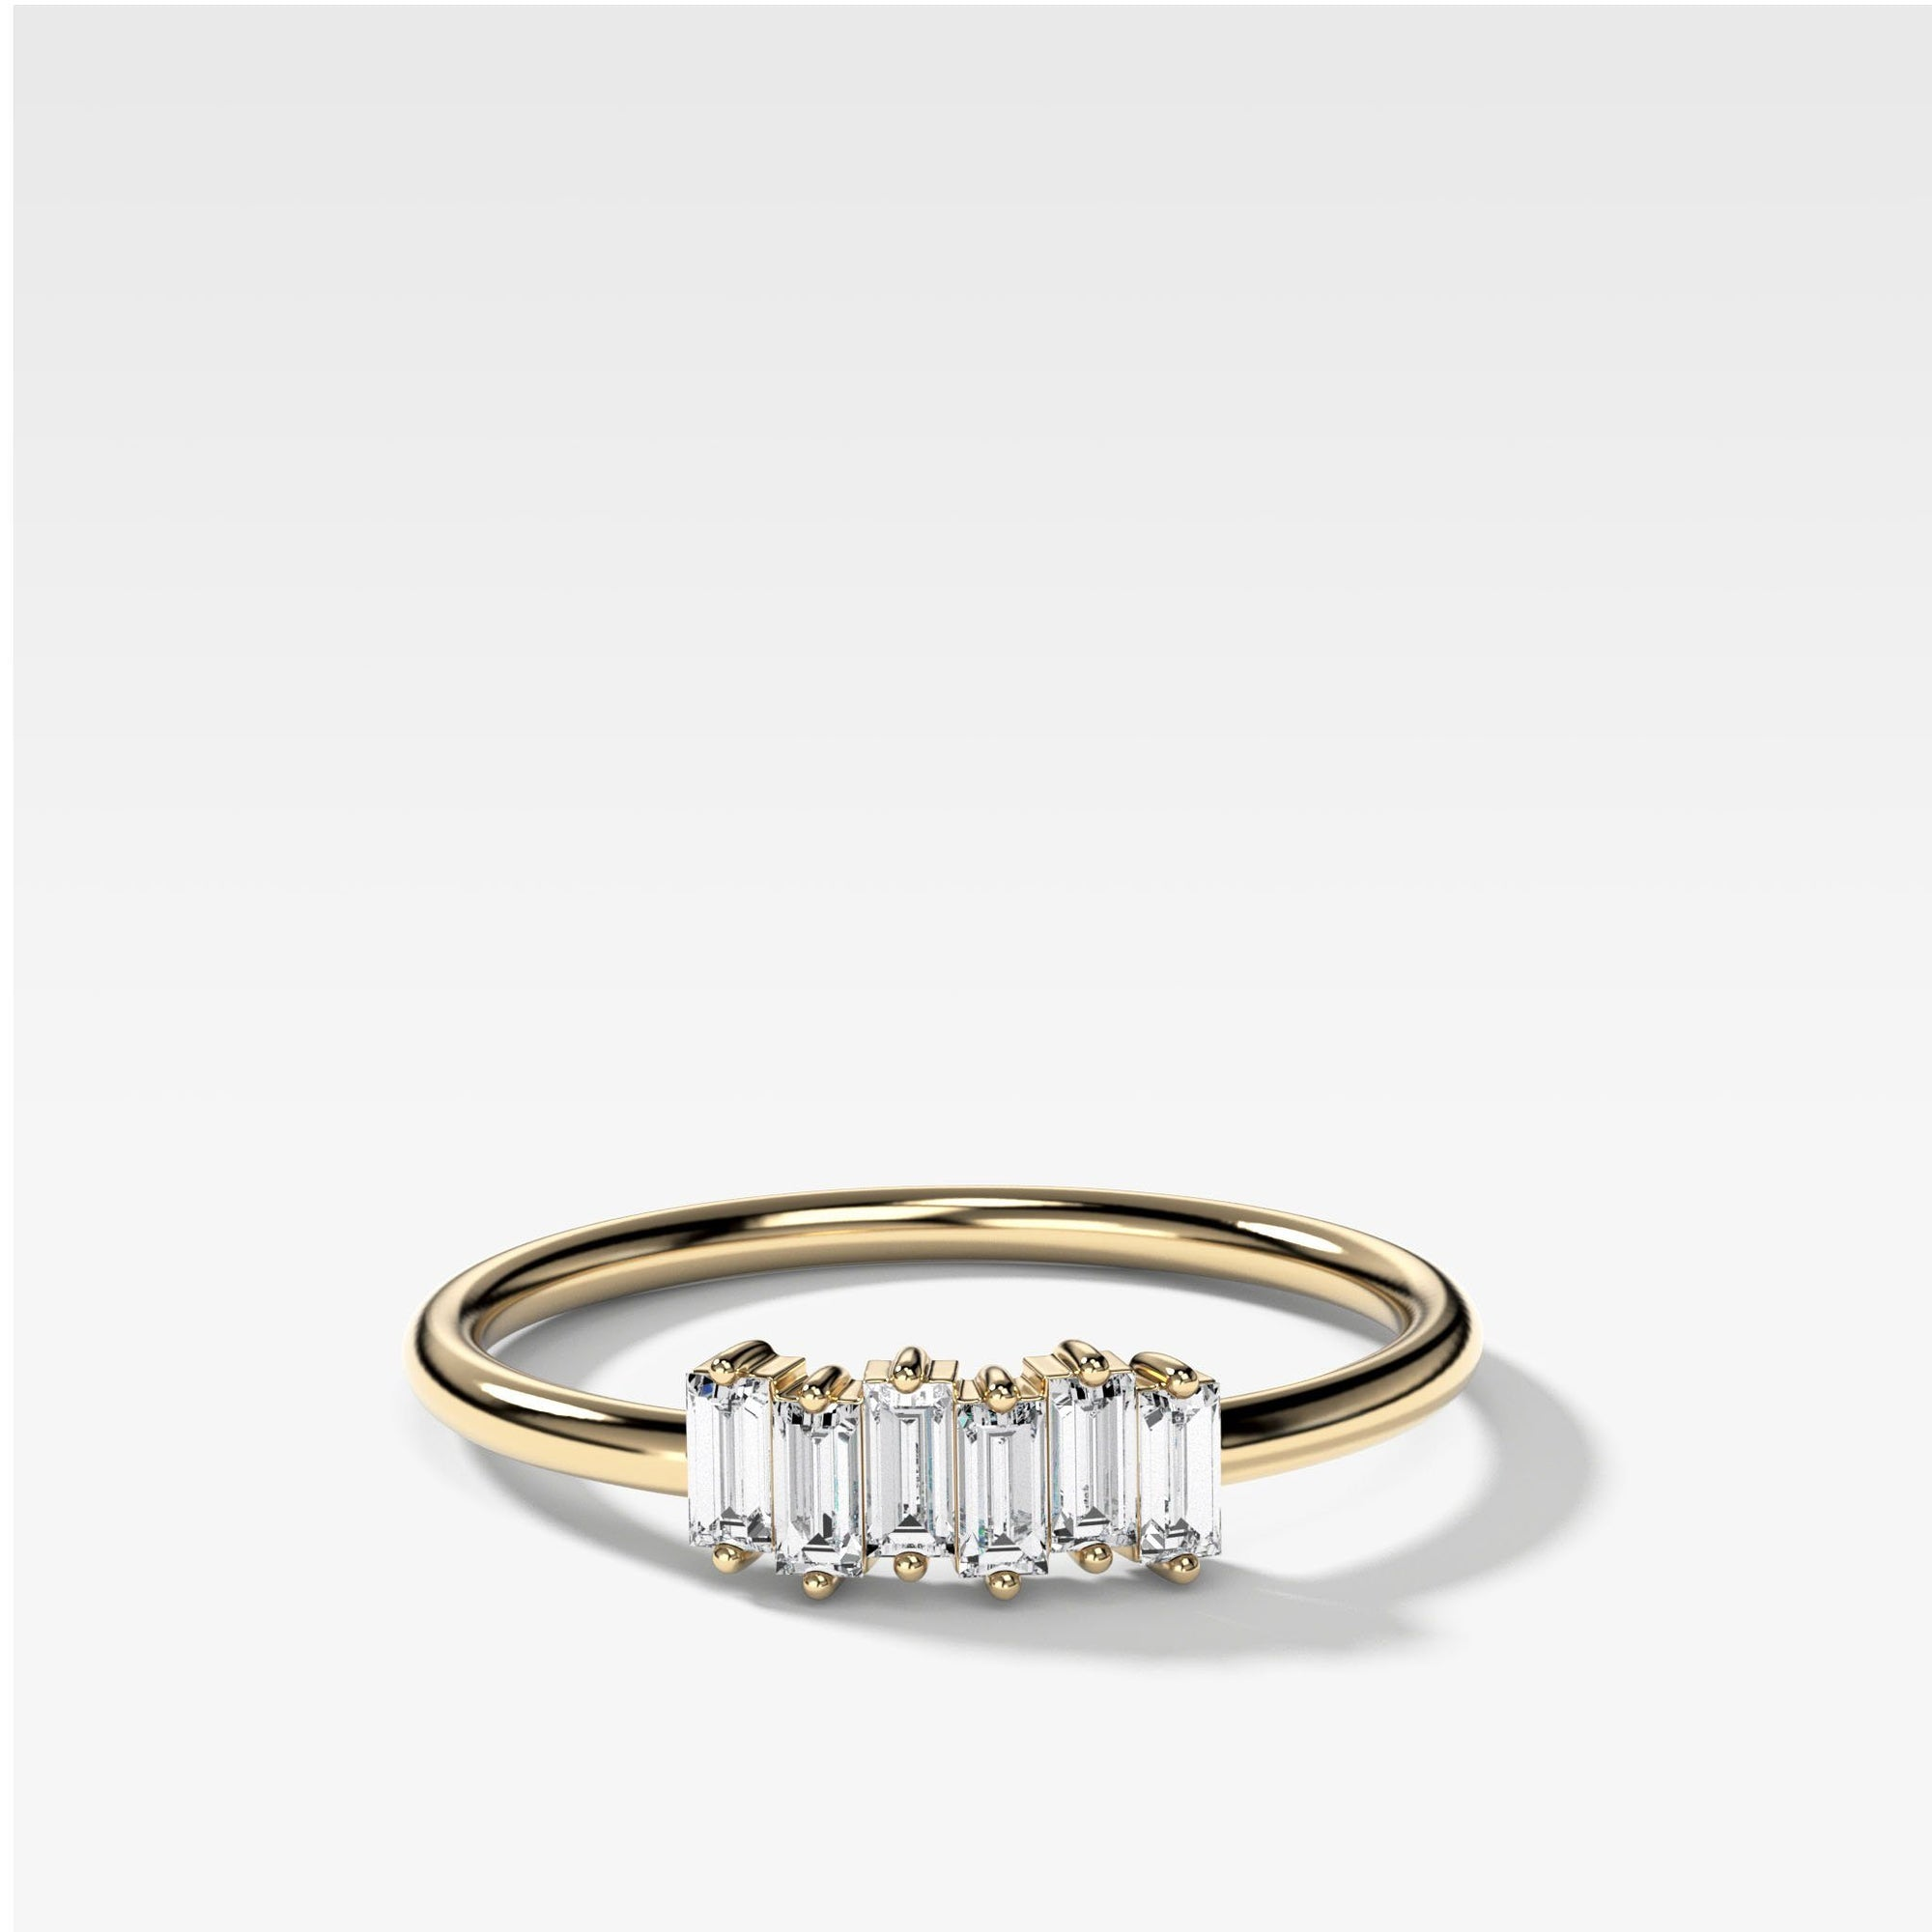 Highlight Petite Baguette Stacker Band available in Yellow Gold by Good Stone